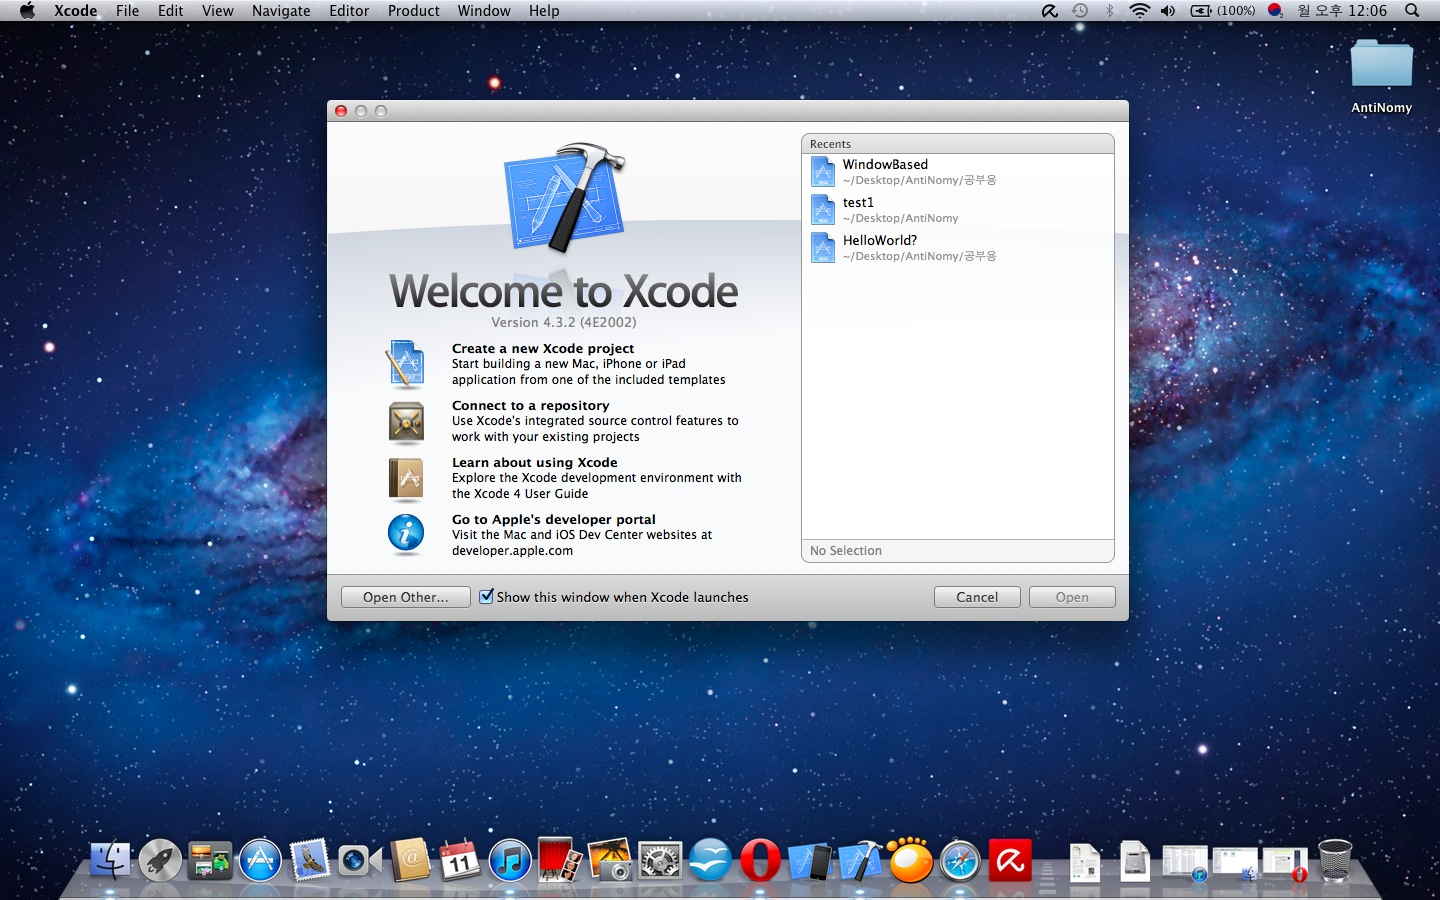 X-Code 4.3.2 버전에서 Window-Based-Appl..